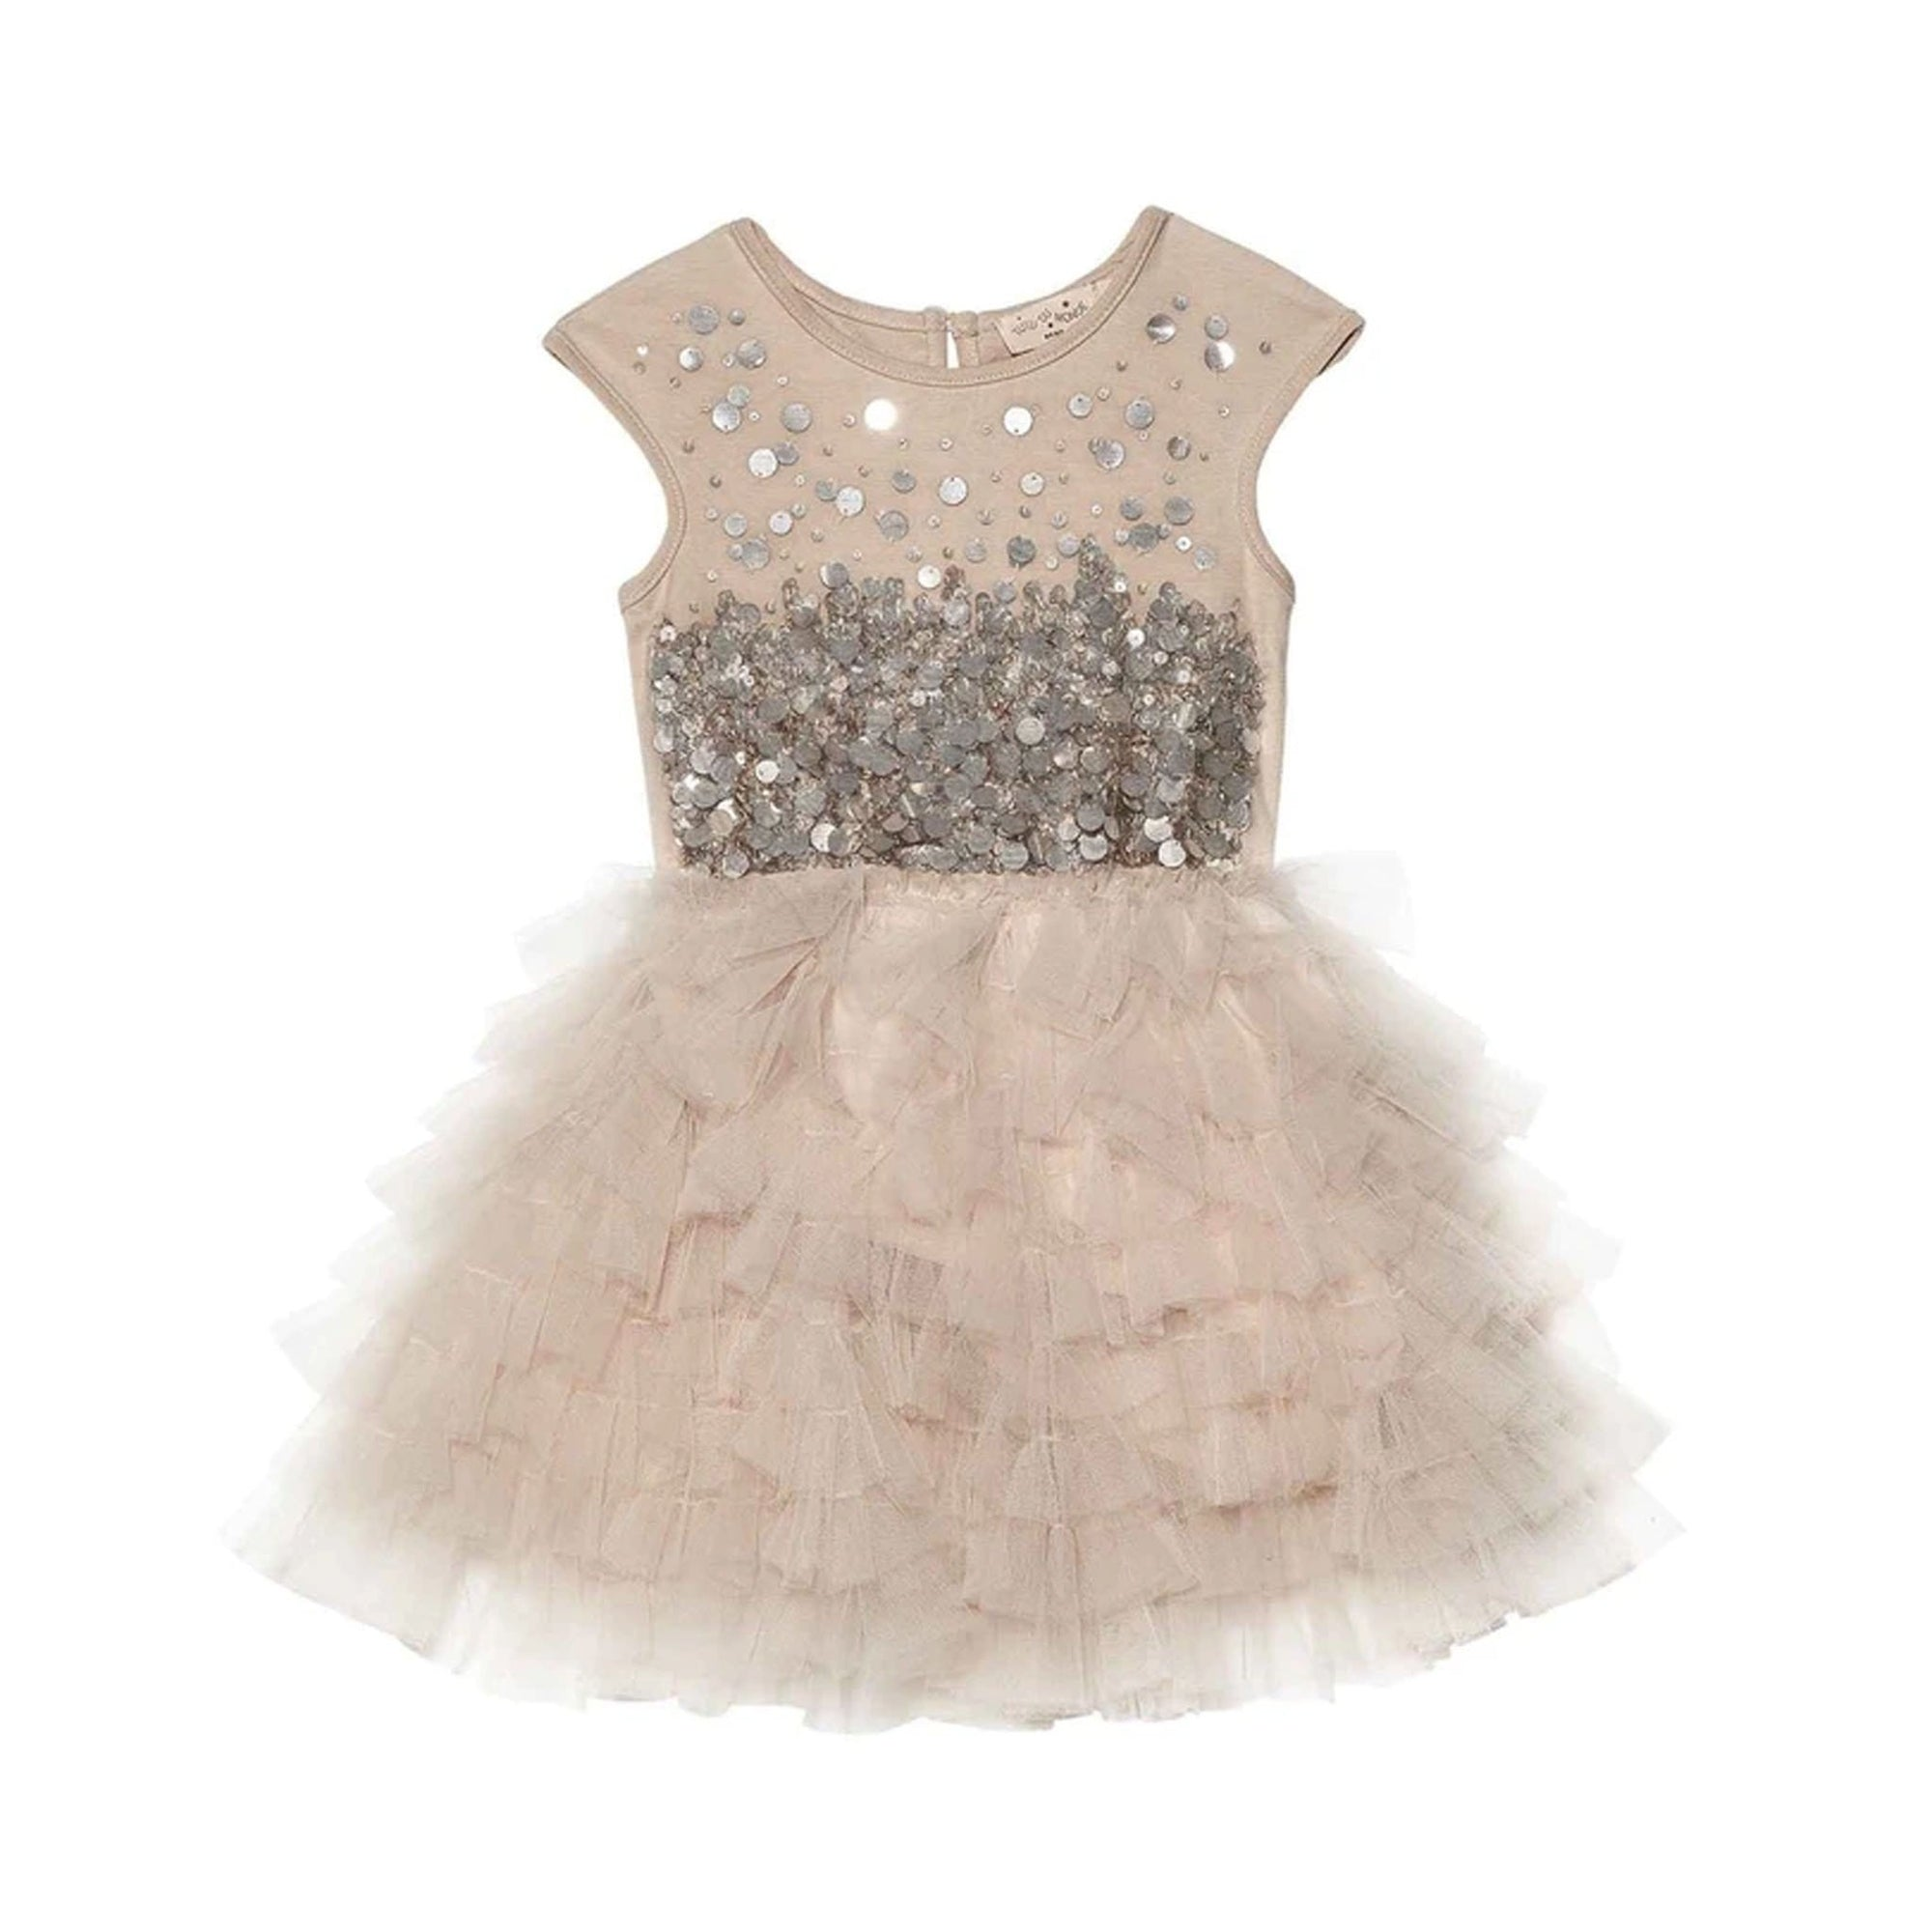 Tutu Du Monde Bebe Everglow Tutu Dress - Apple Pie